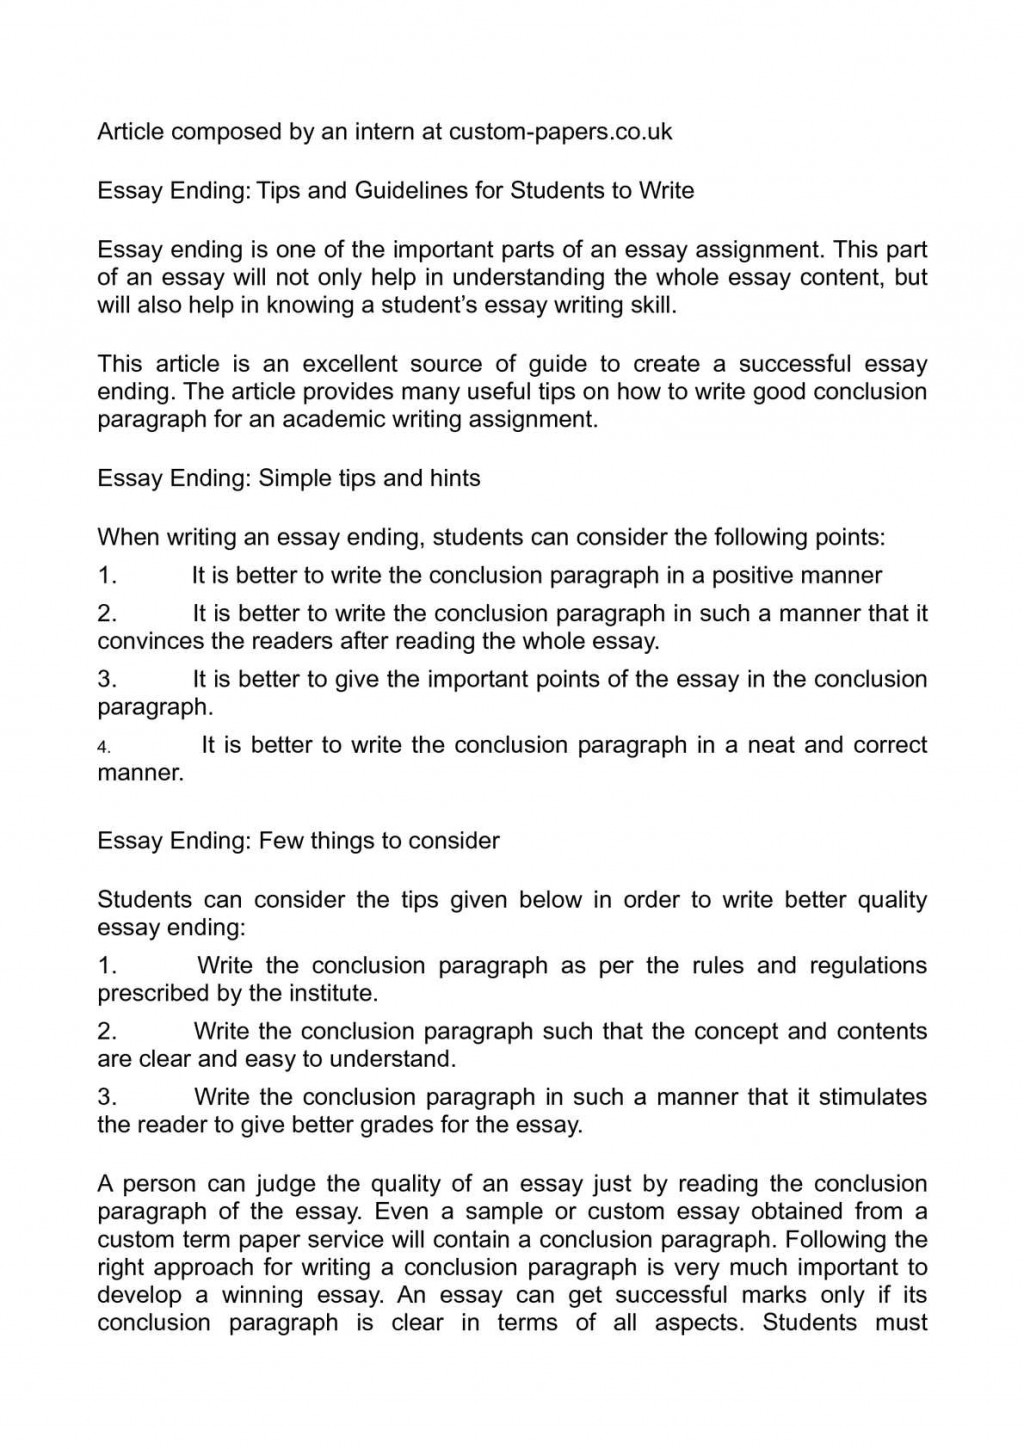 001 Parts Of An Essay Ending Tips And Guidelines For Students To Write Writing Persuasi Pdf Three Persuasive Stupendous Argumentative Ppt Worksheet Quiz Large